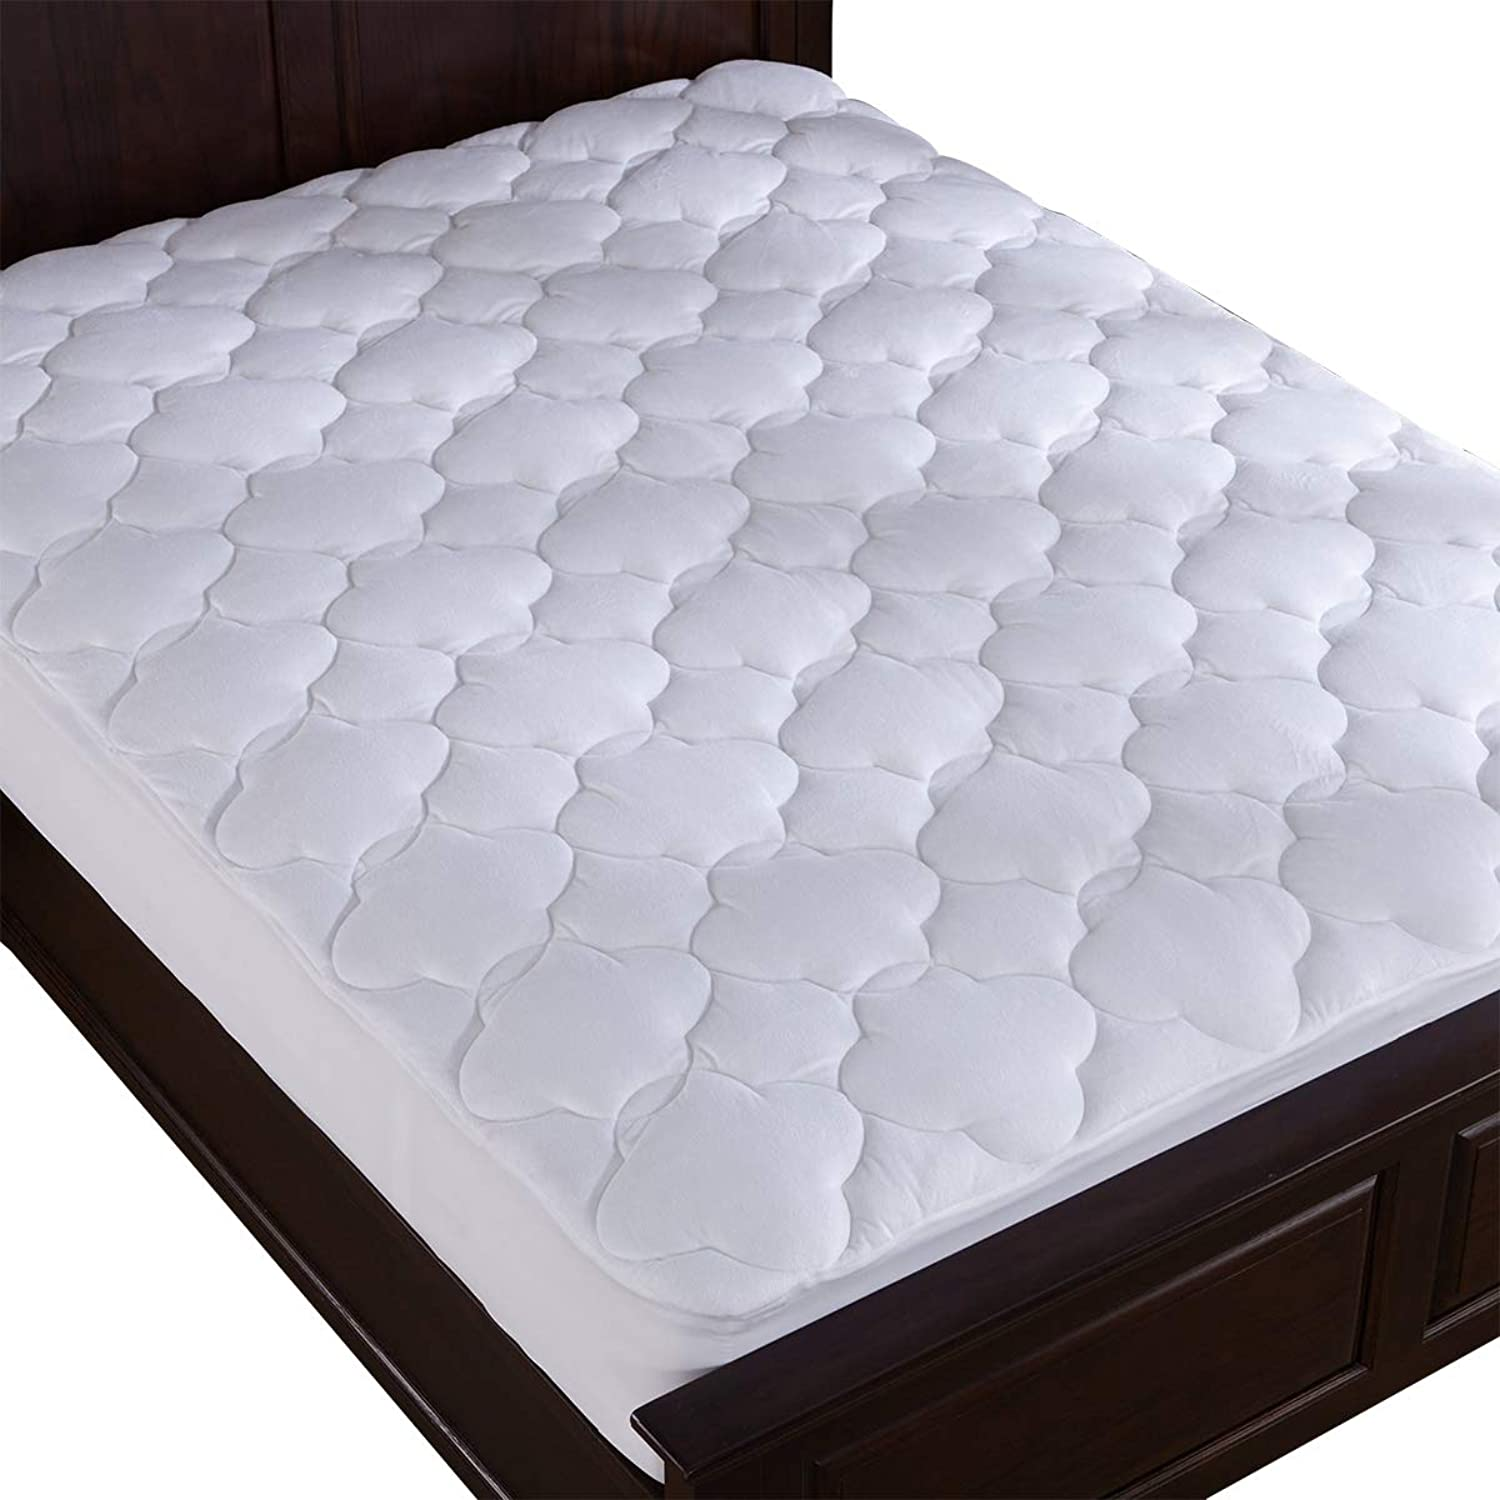 Puredown Down Alternative Mattress Pad Topper Cloud Quilt Design Microplush Fabric Top White Queen